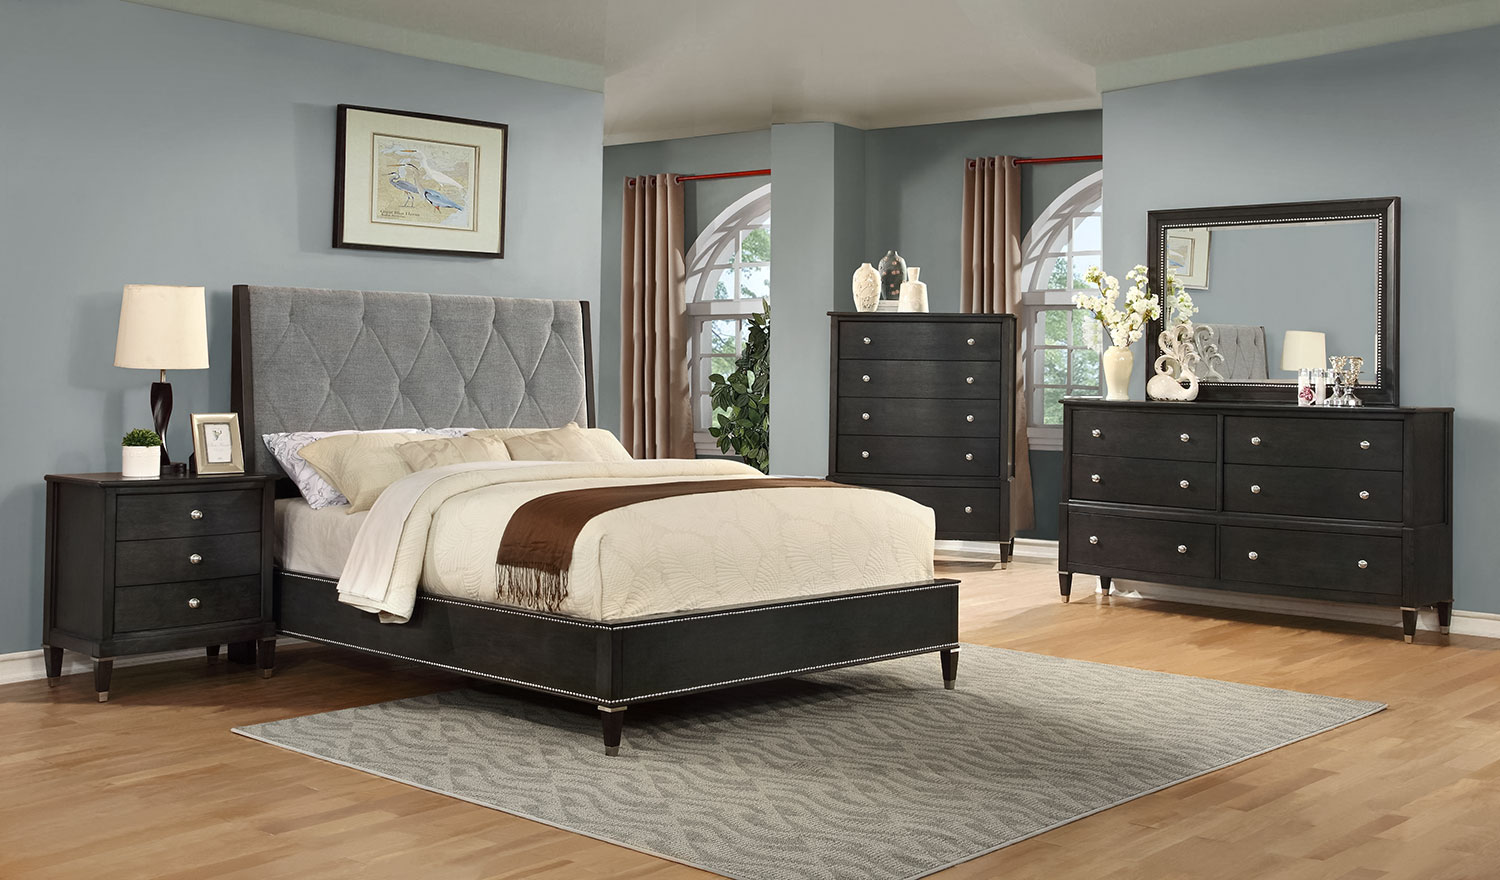 Bedroom Furniture - Nelson 5-Piece Queen Bedroom Set - Pewter